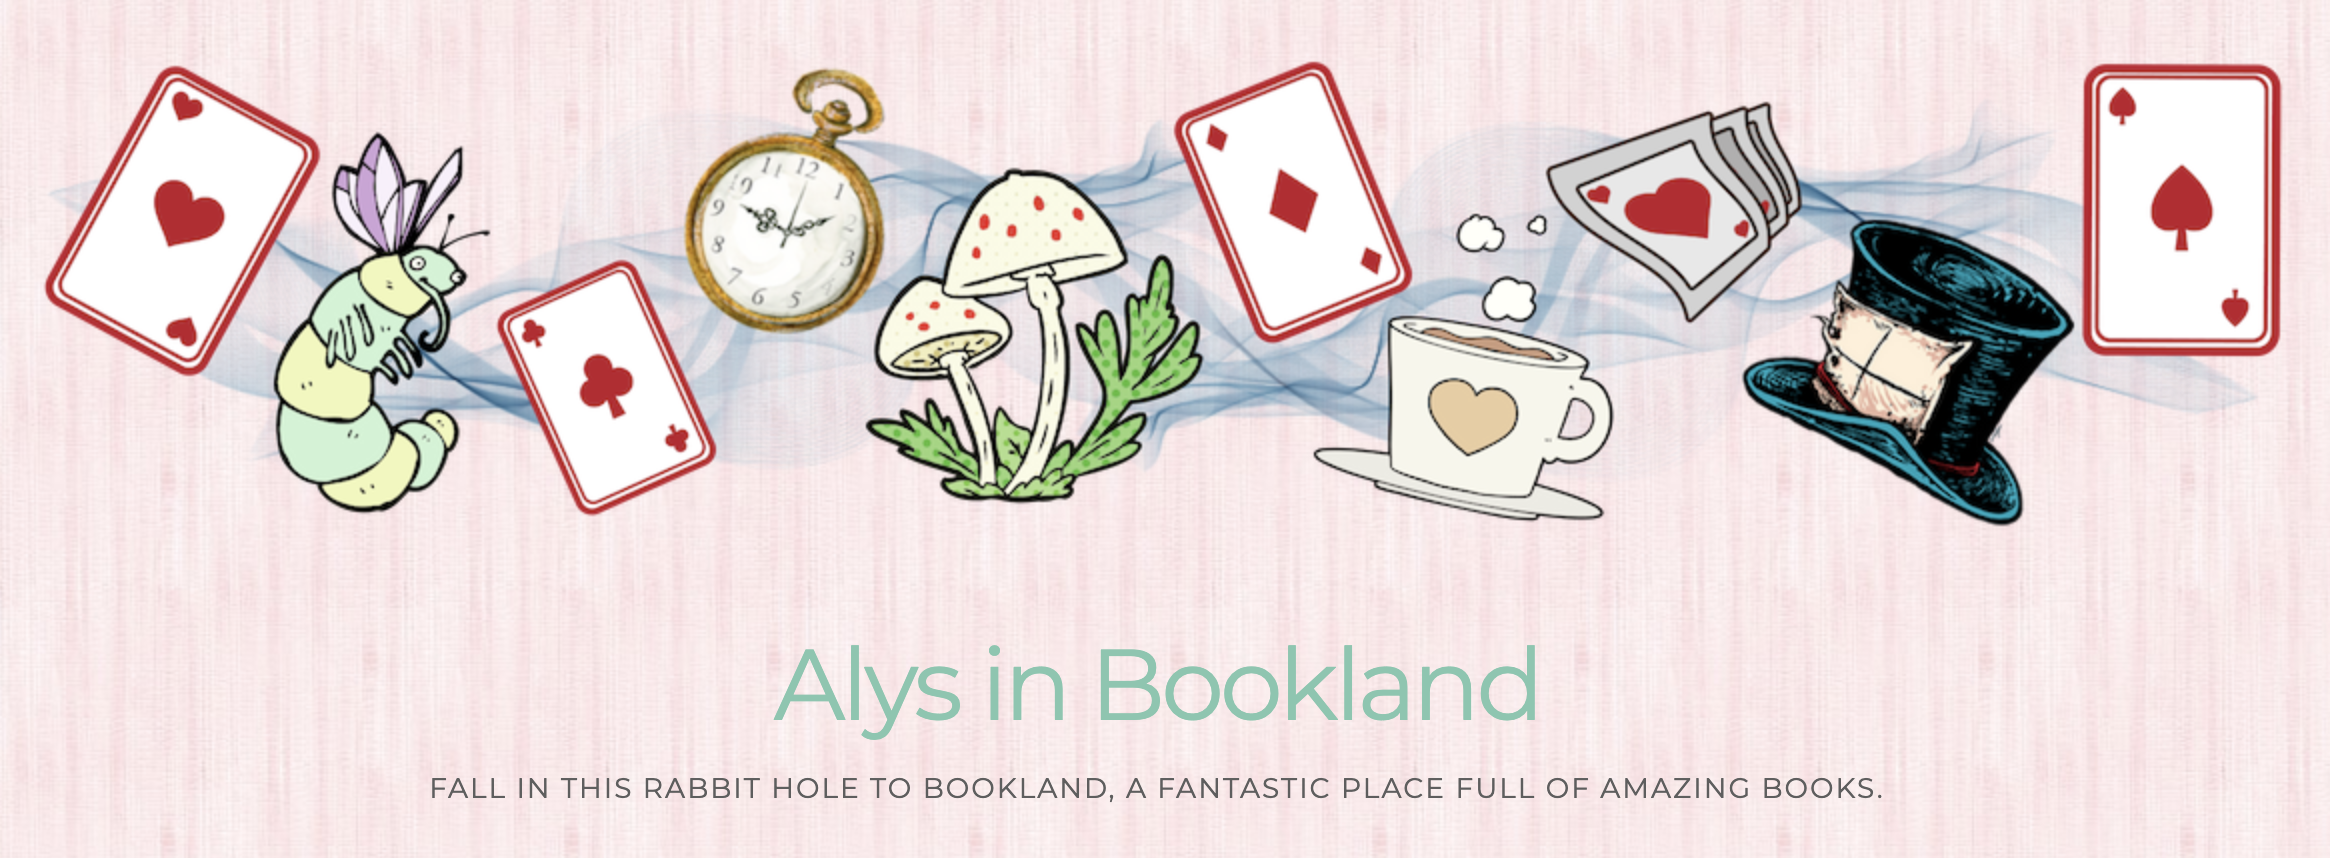 Alys in Bookland